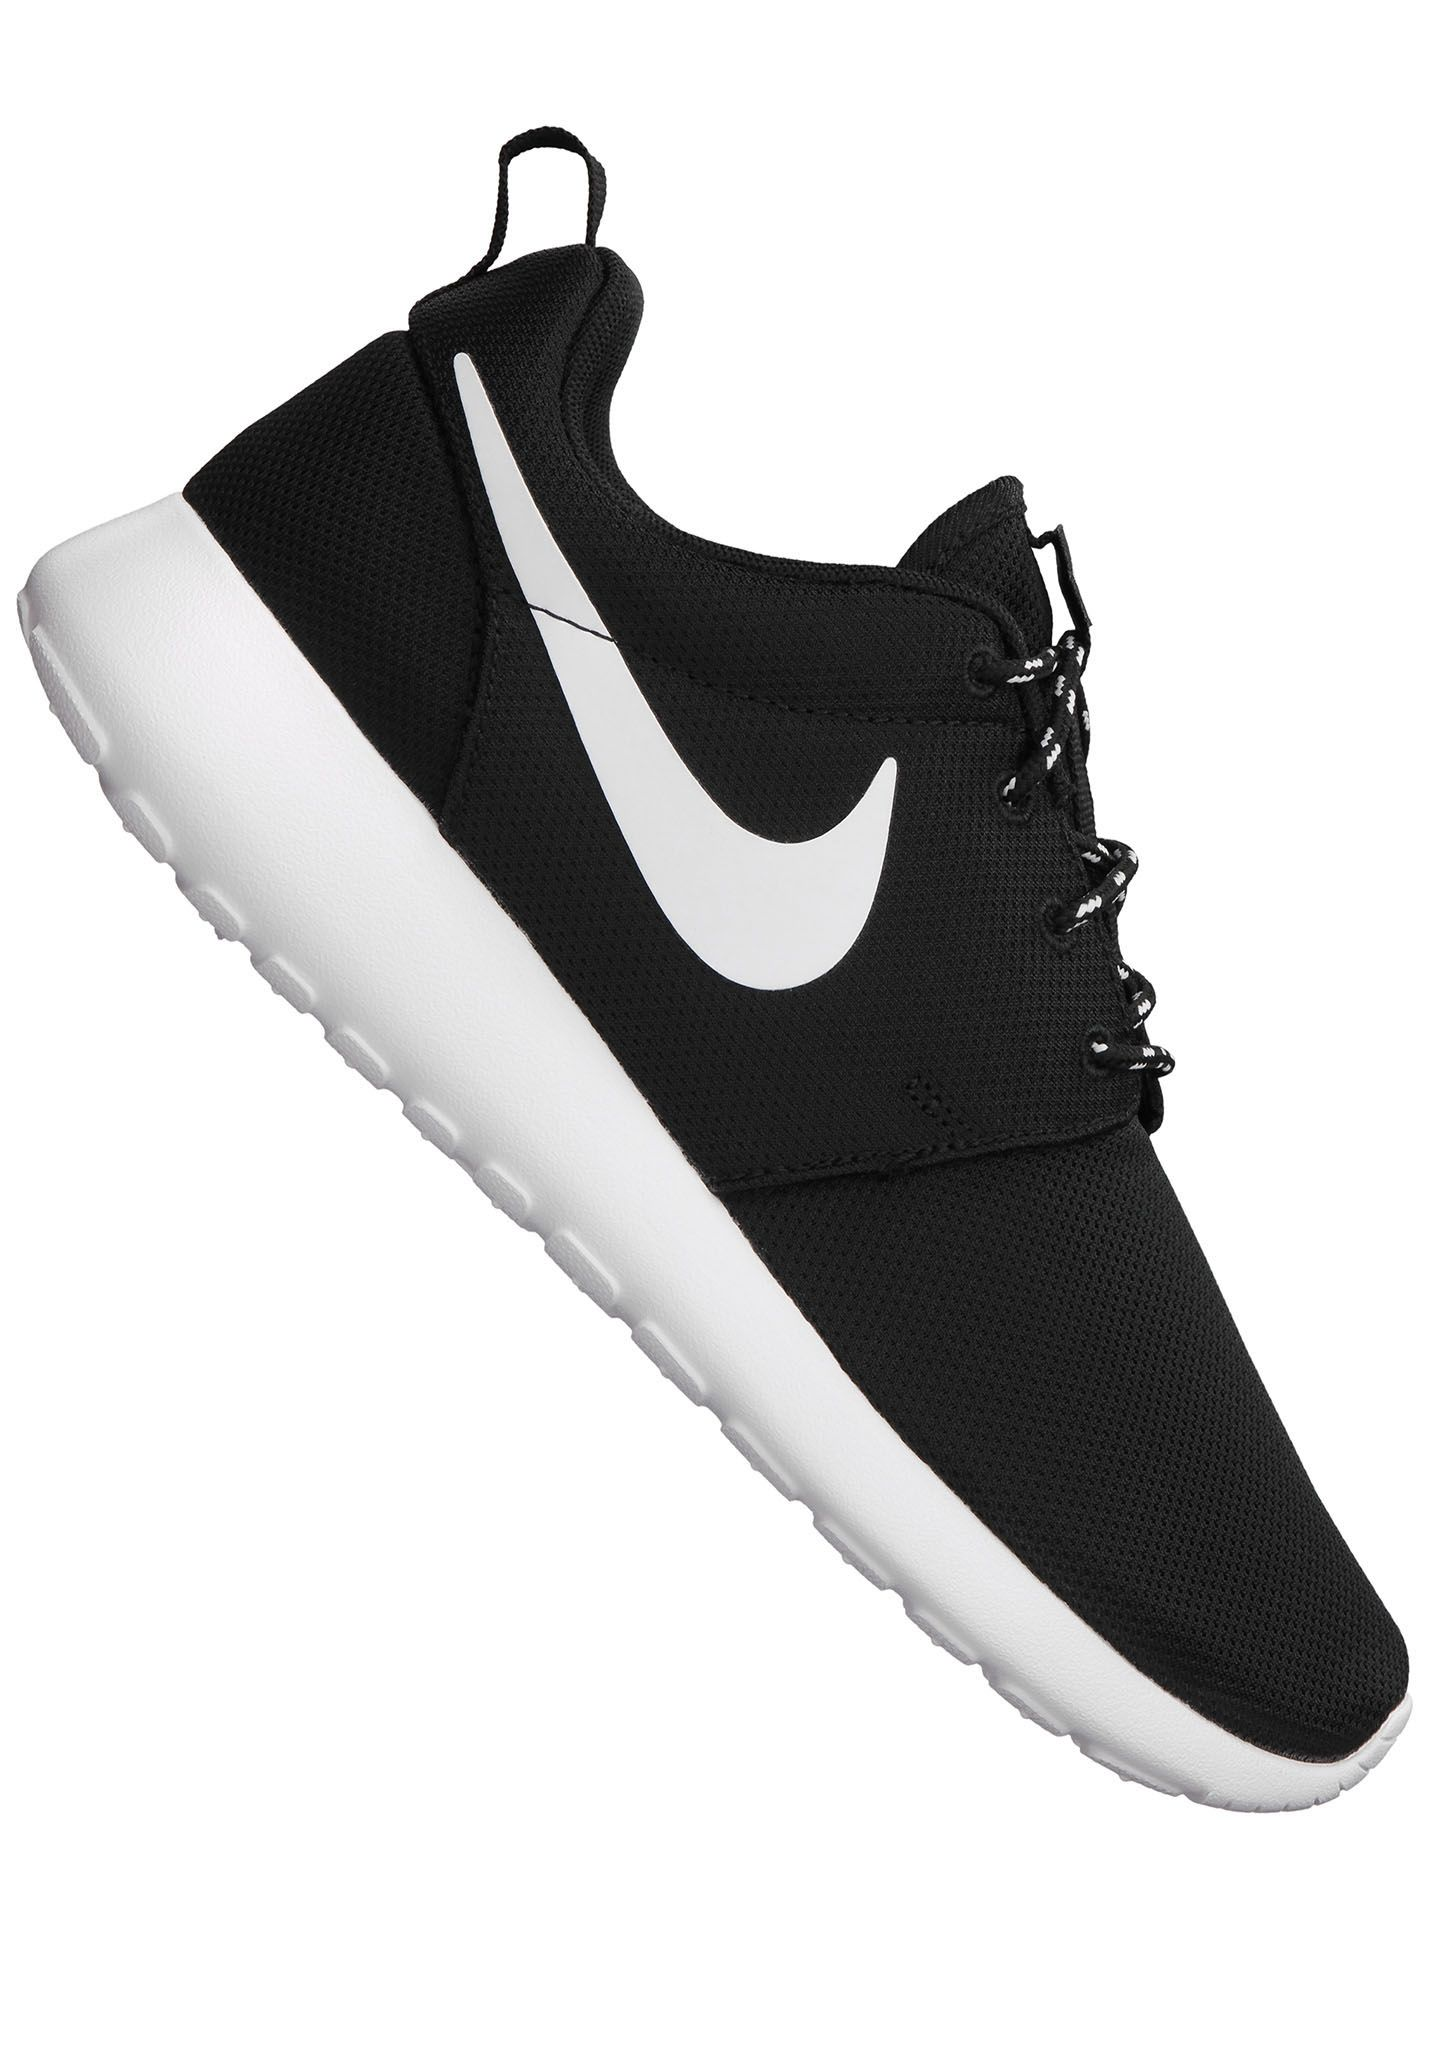 3306cc56c398 ... nike sportswear roshe one sneakers for women black planet sports